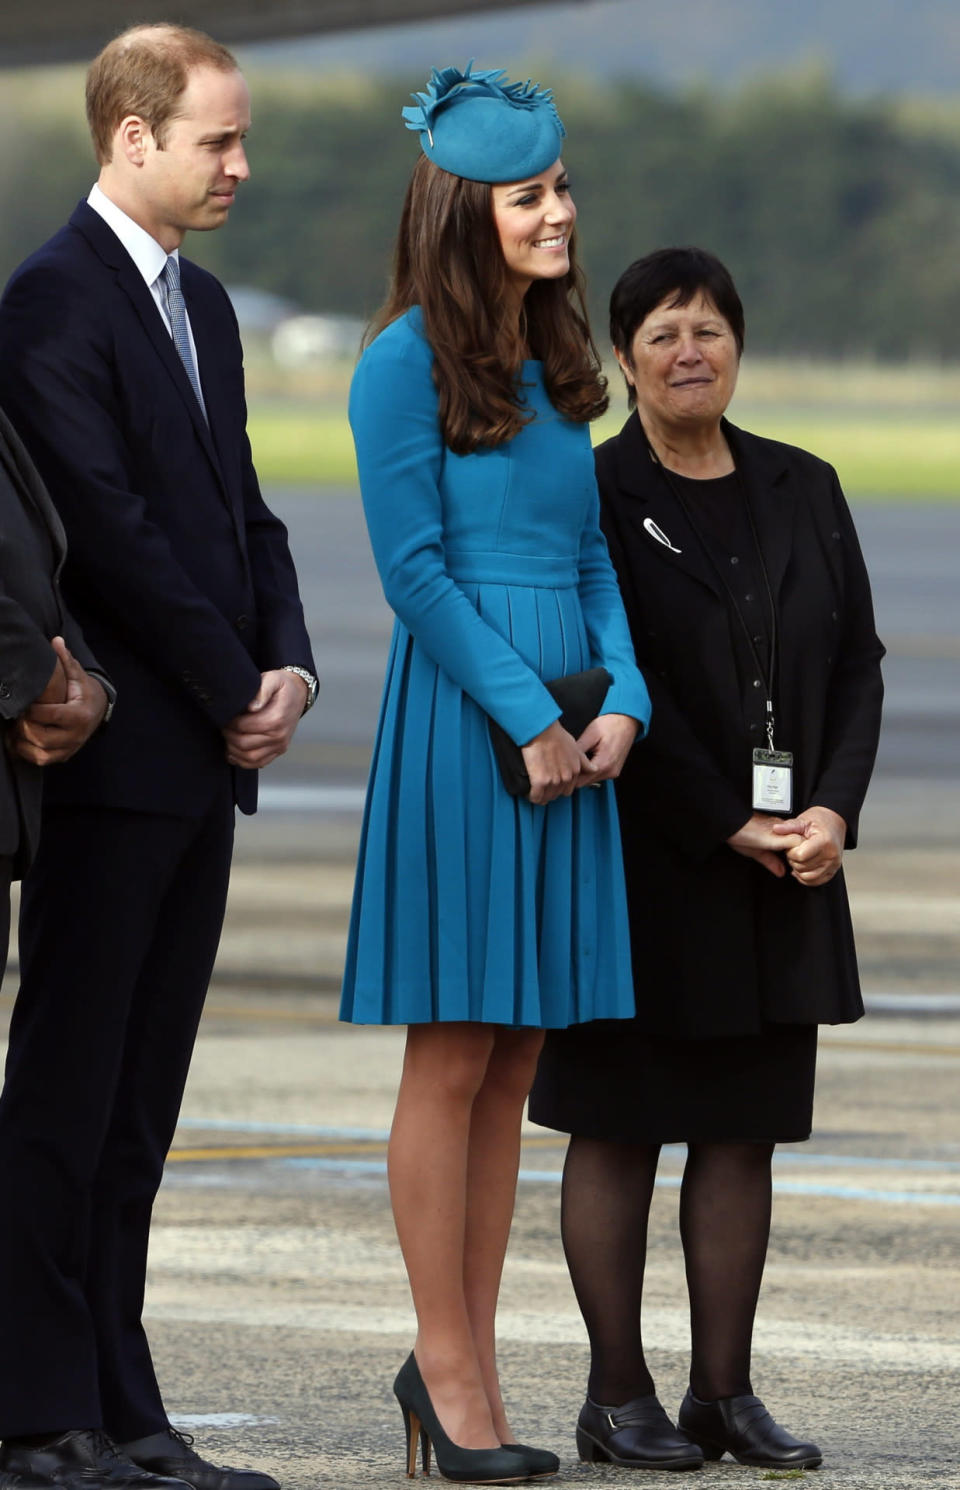 <p>For a day of engagements in New Zealand, the Duchess donned a turquoise Emilia Wickstead dress with a grey clutch and matching heels by Emmy London. Her coordinating hat was by milliner Jane Taylor. </p><p><i>[Photo: PA]</i></p>